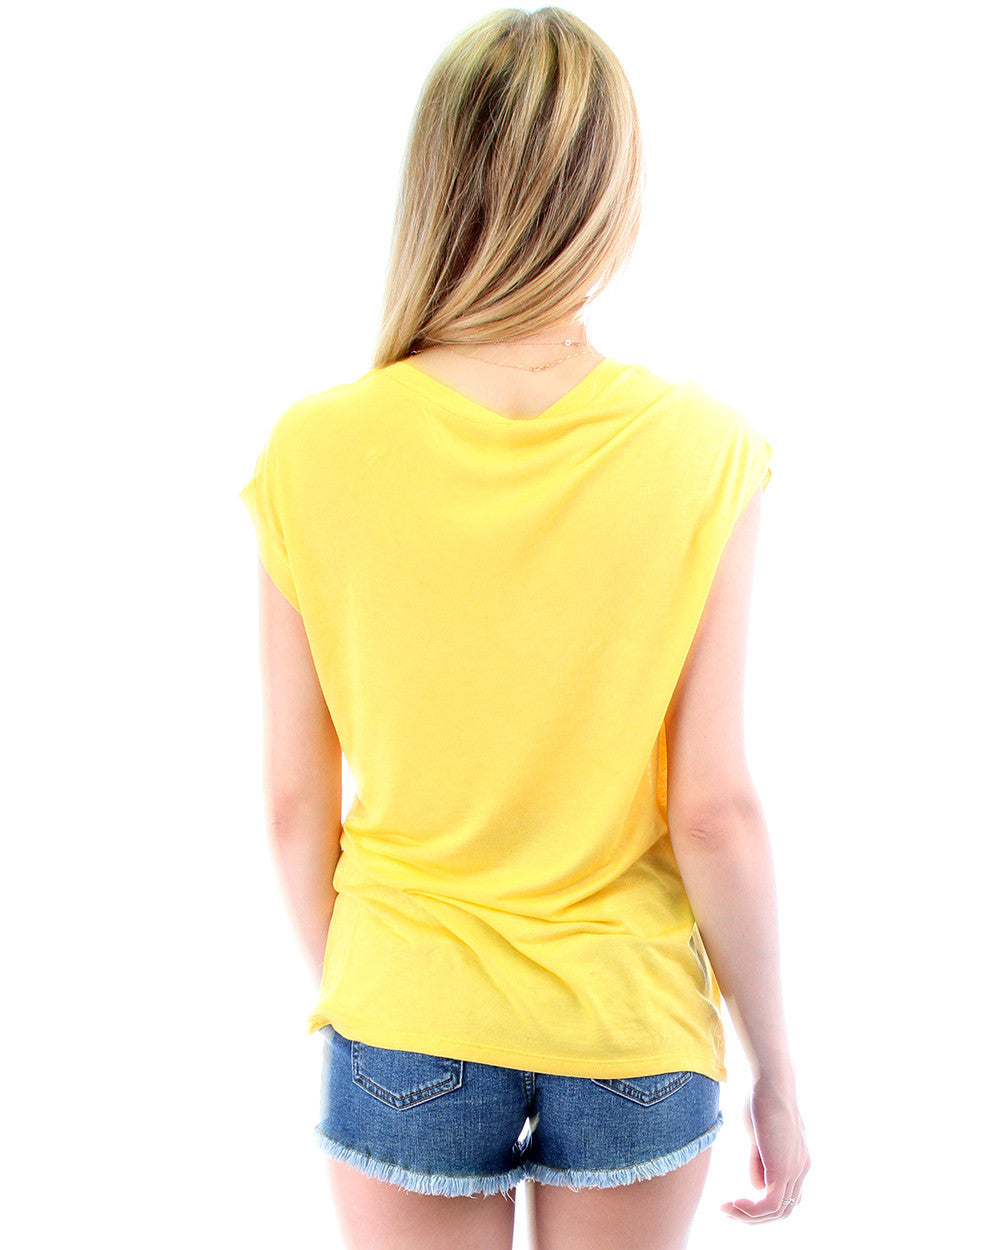 Loose Fitting Tee with Zipper in Yellow